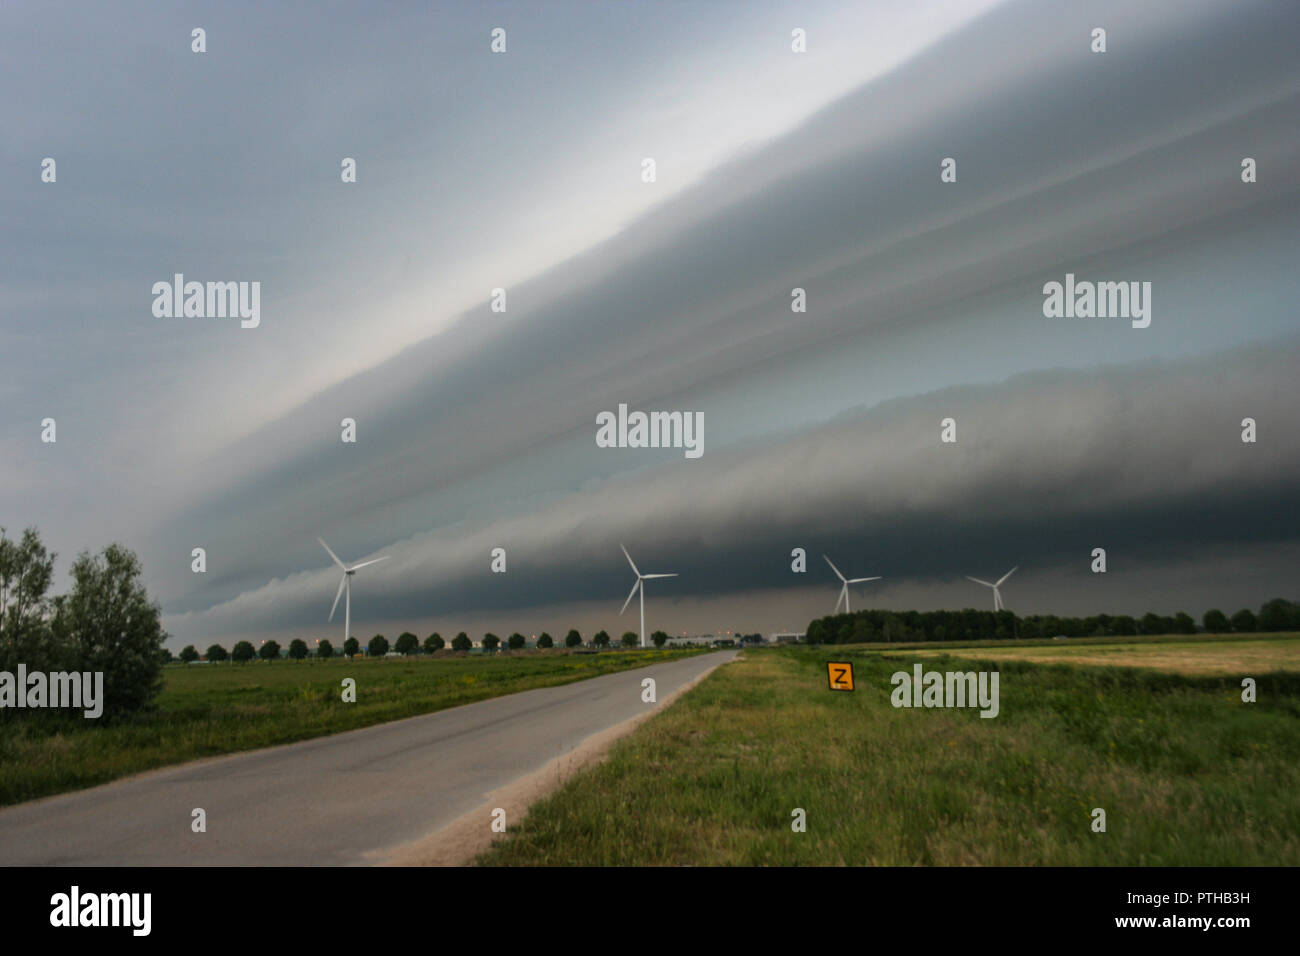 A multi layered shelfcloud causing bad weather in The Netherlands. - Stock Image